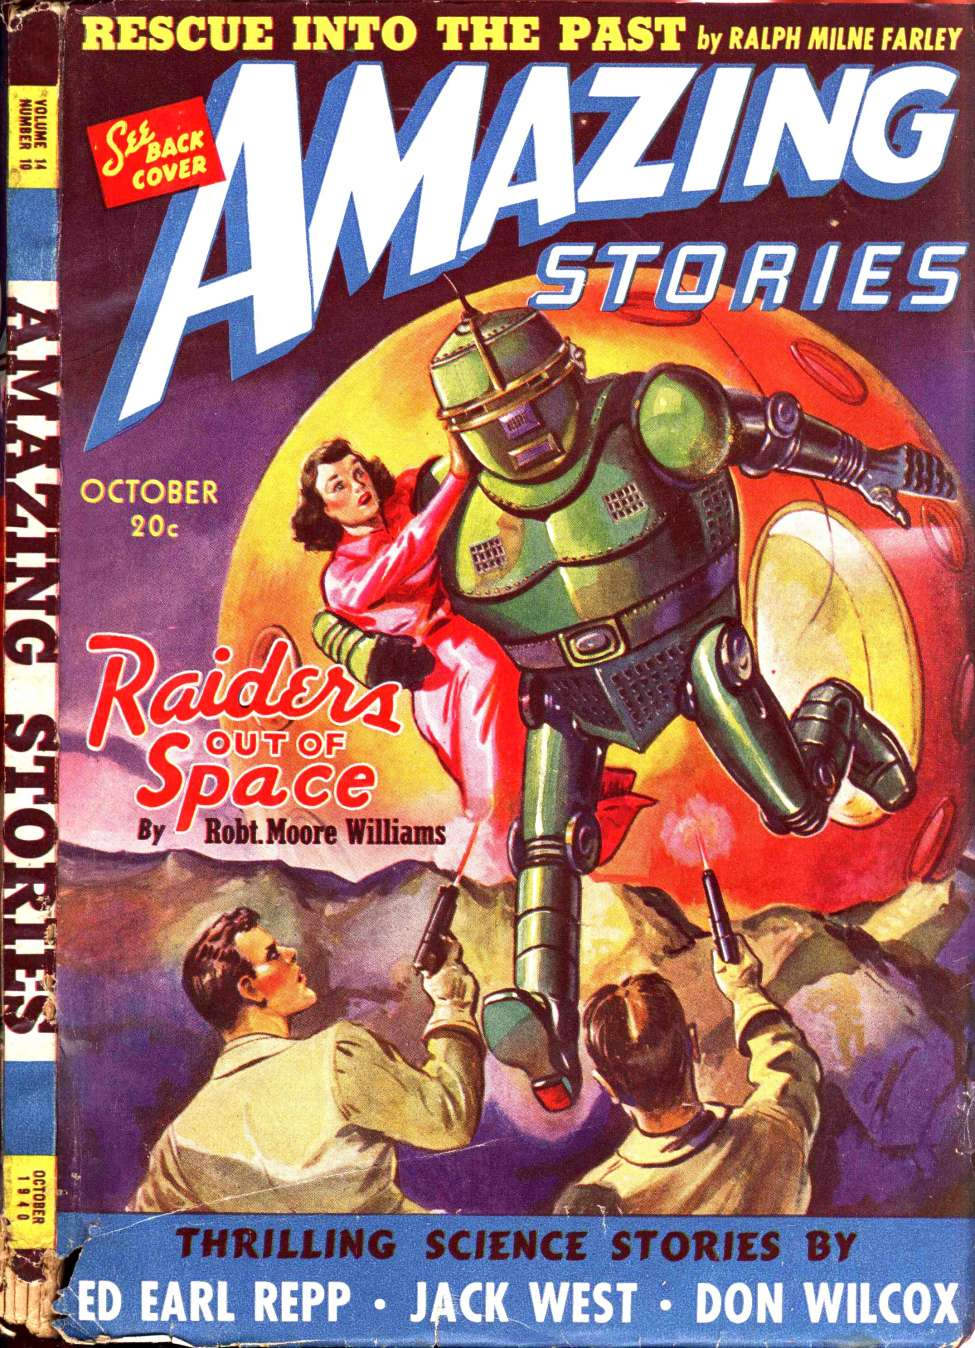 Comic Book Cover For Amazing Stories v14 10 - Raiders Out of Space - Robert Moore Williams